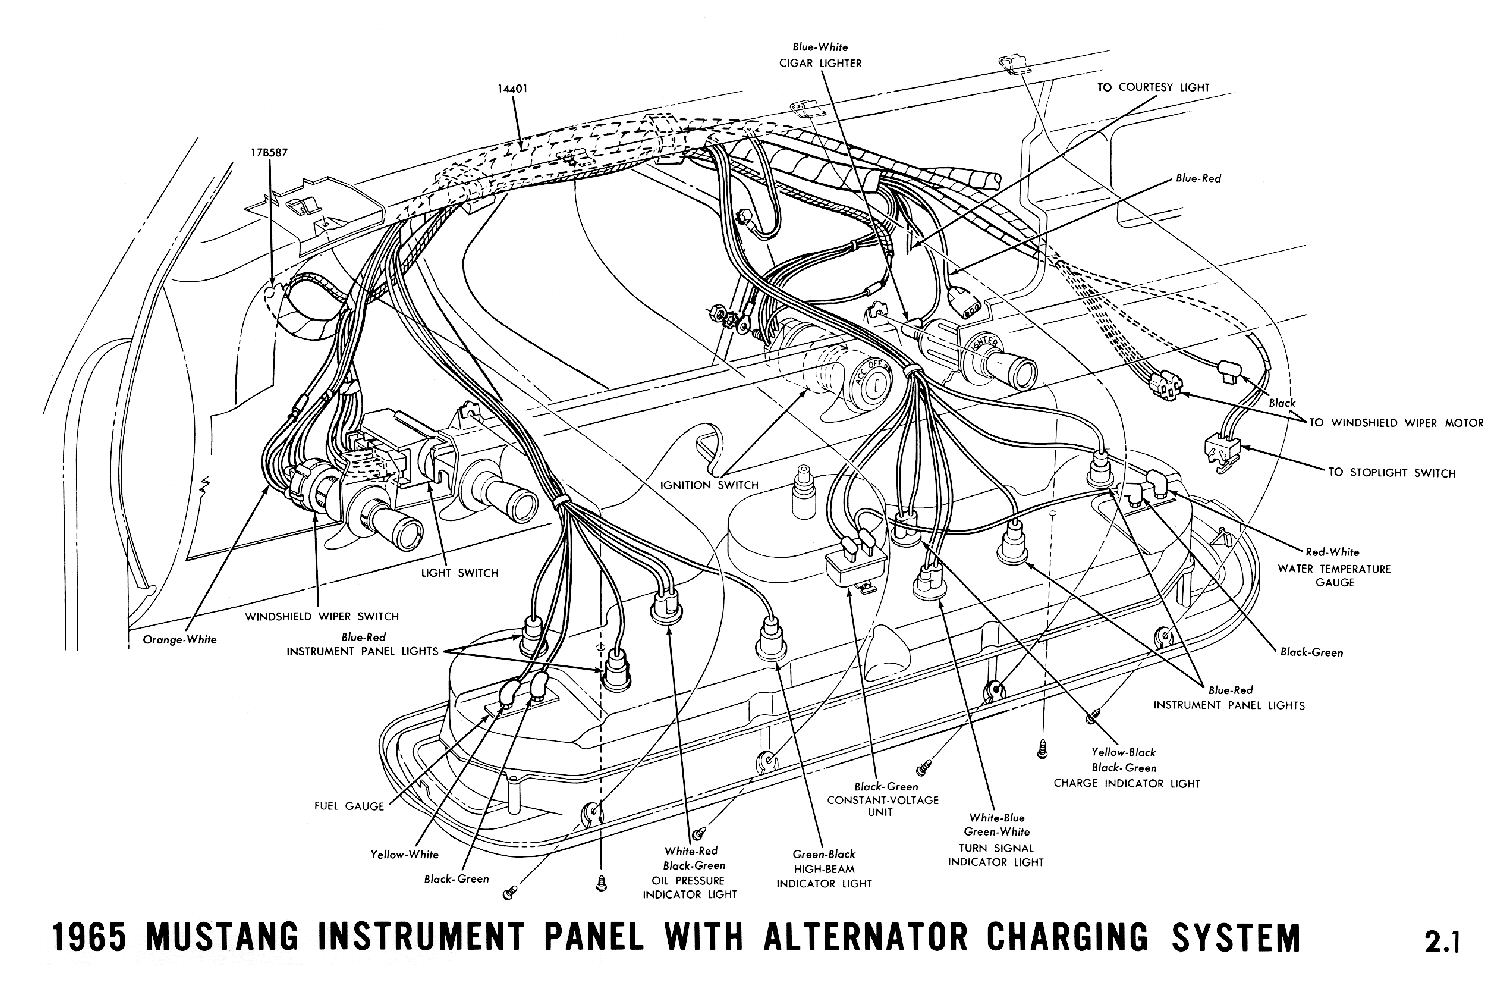 1965 Mustang Wiring Diagrams Average Joe Restoration Harley Oil Pressure Gauge Diagram Free Download Instrument Cluster Connections Wiper Switch